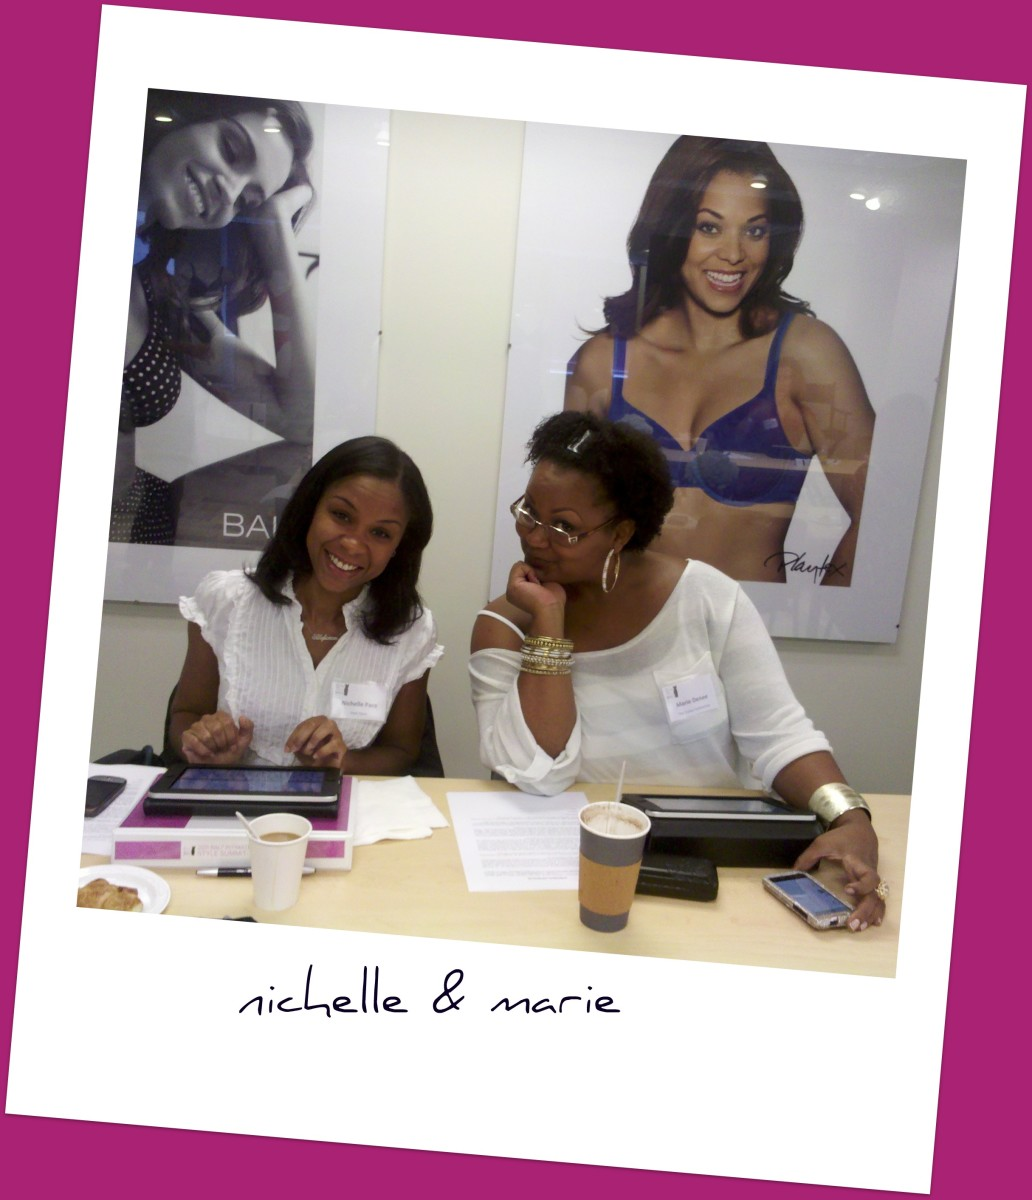 nichelle and marie